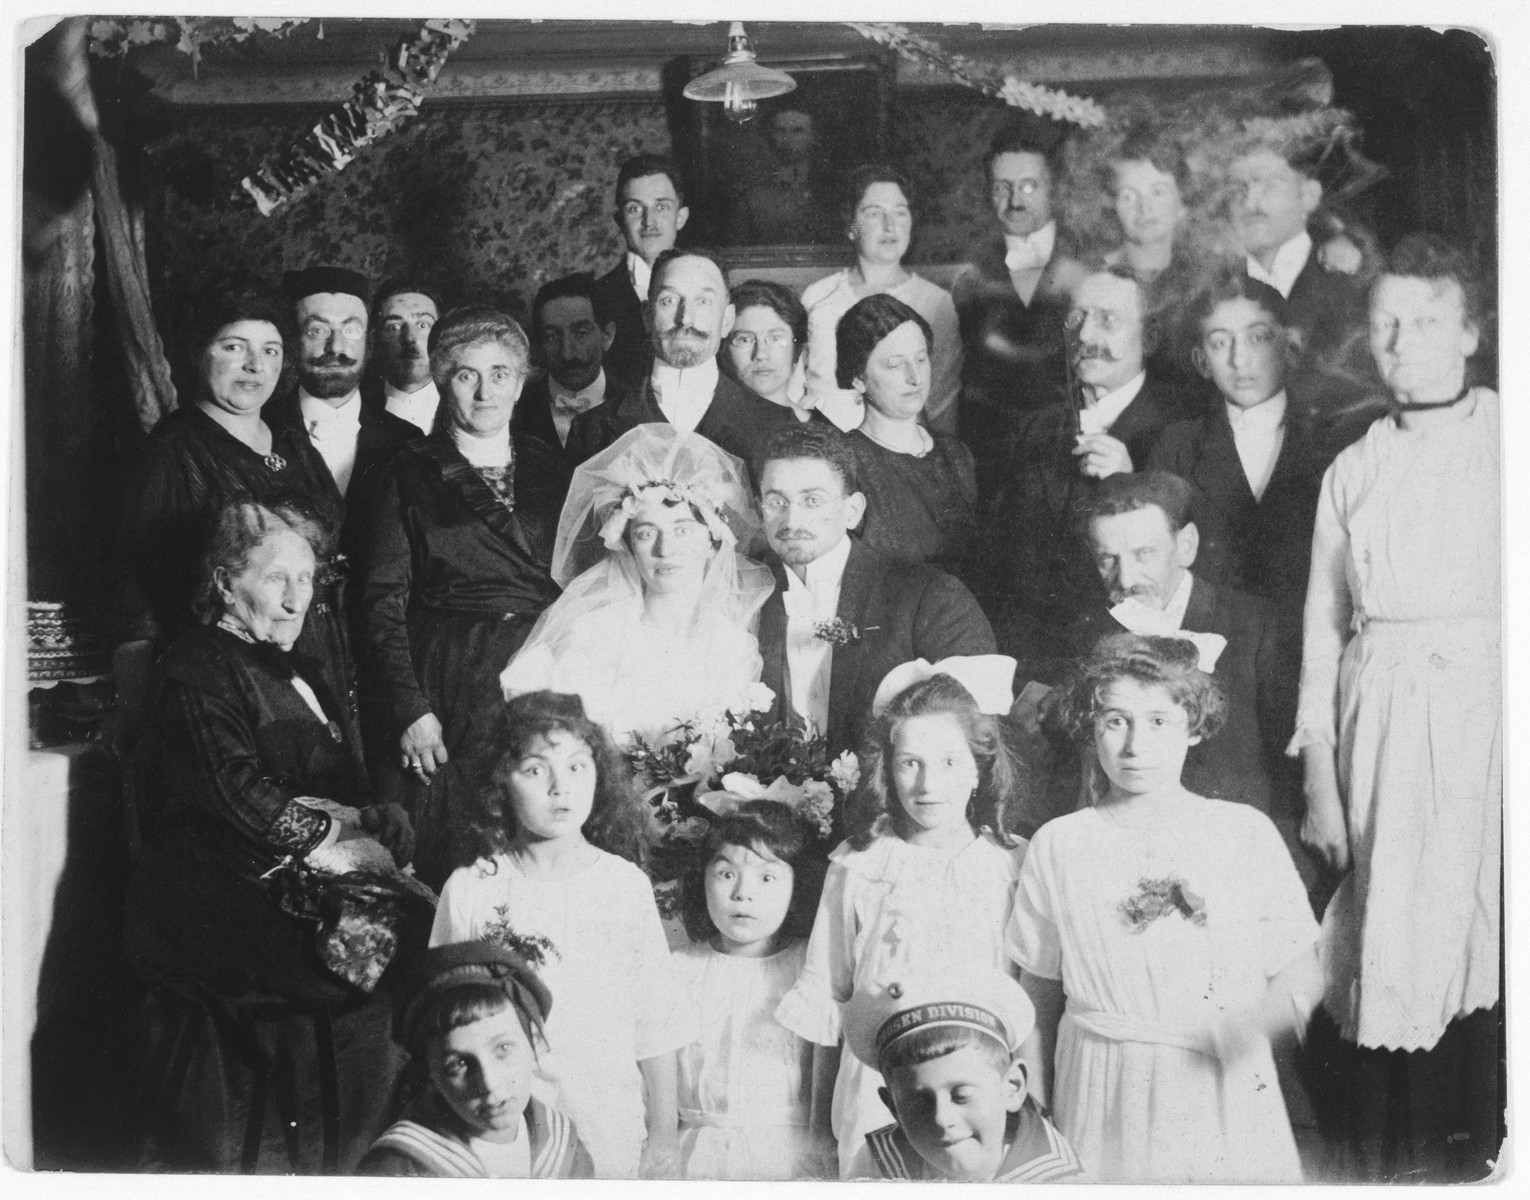 Group portrait of the wedding party at the marriage of Bertha Steinberger and Siegmund Marx in Dettelbach, Germany.